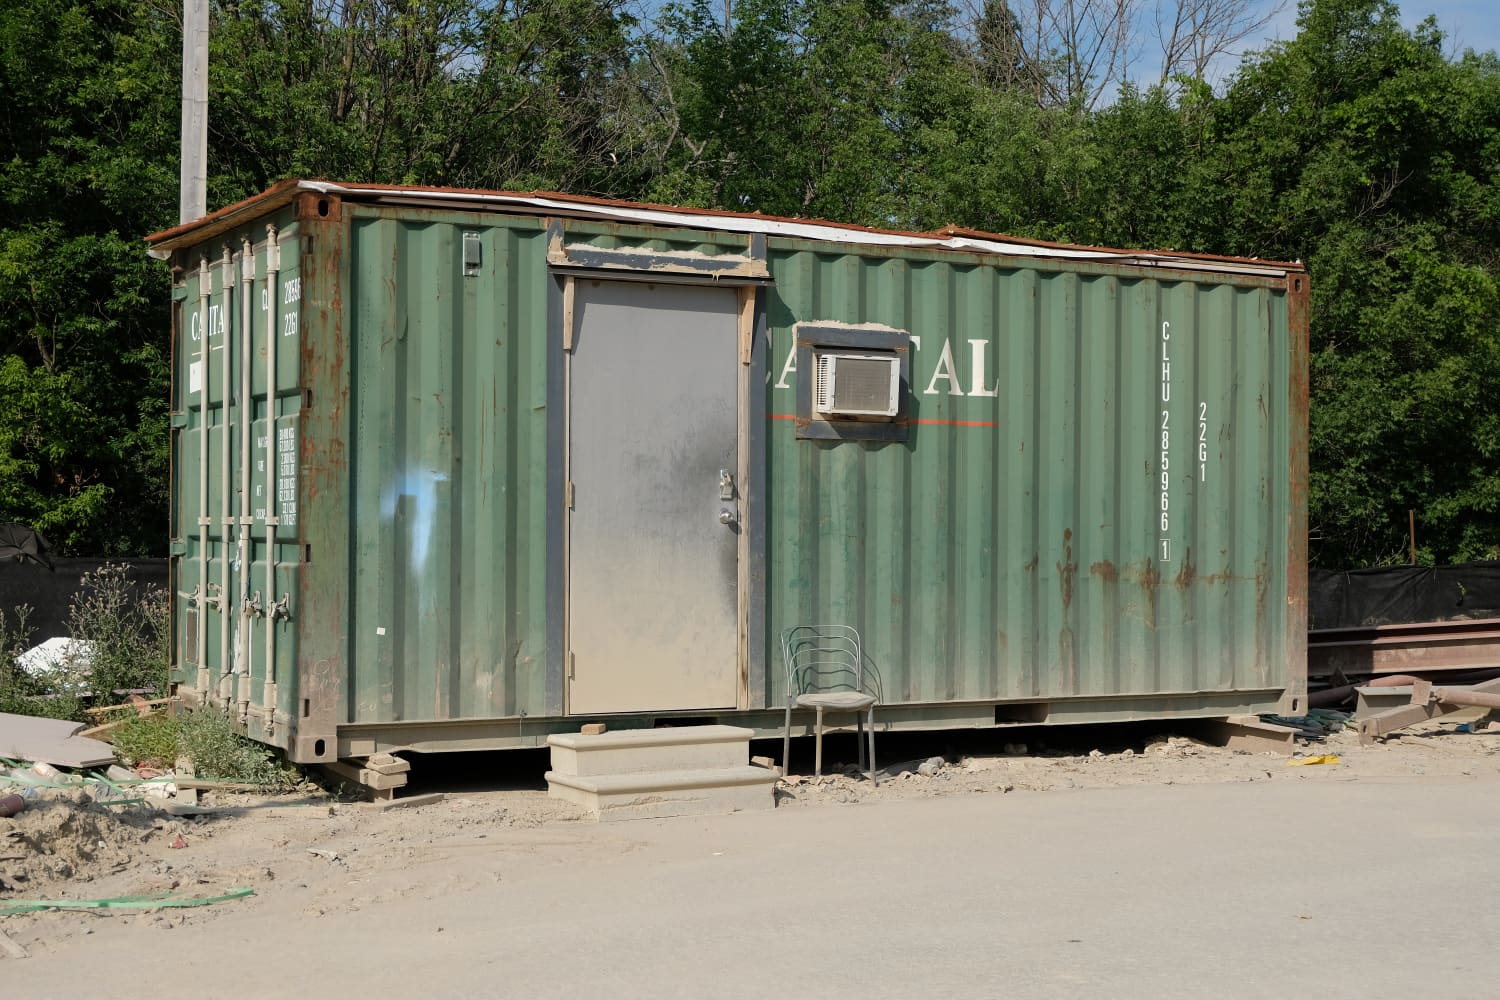 Man Booked a 'Clean Home' on Airbnb Only to Find an Illegally Parked Shipping Container When He Arrived